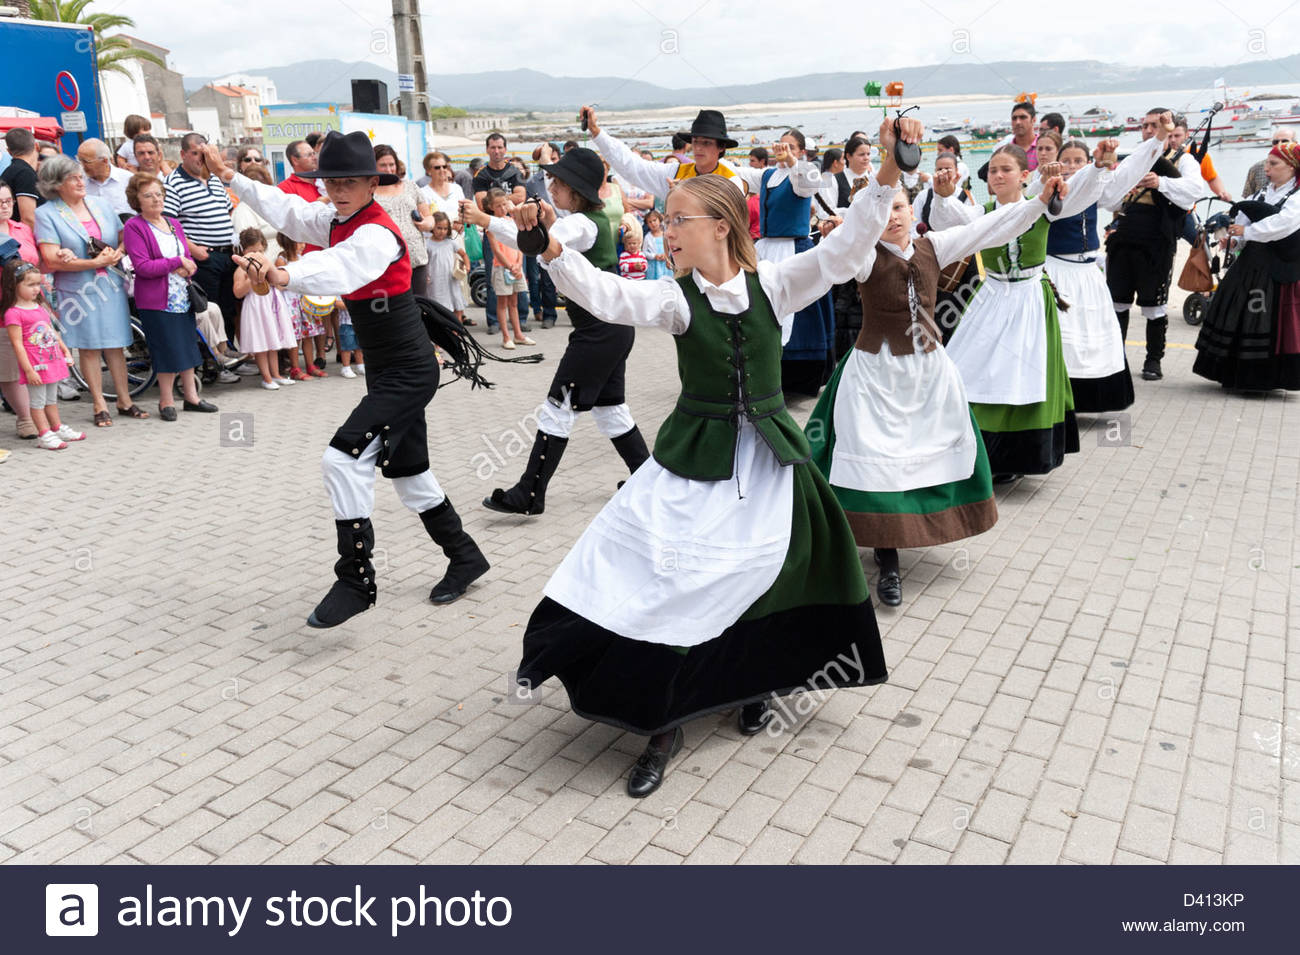 Children performing traditional folk dance during annual fiestas, Corrubedo, Rias Baixas, Galicia, Spain - Stock Image